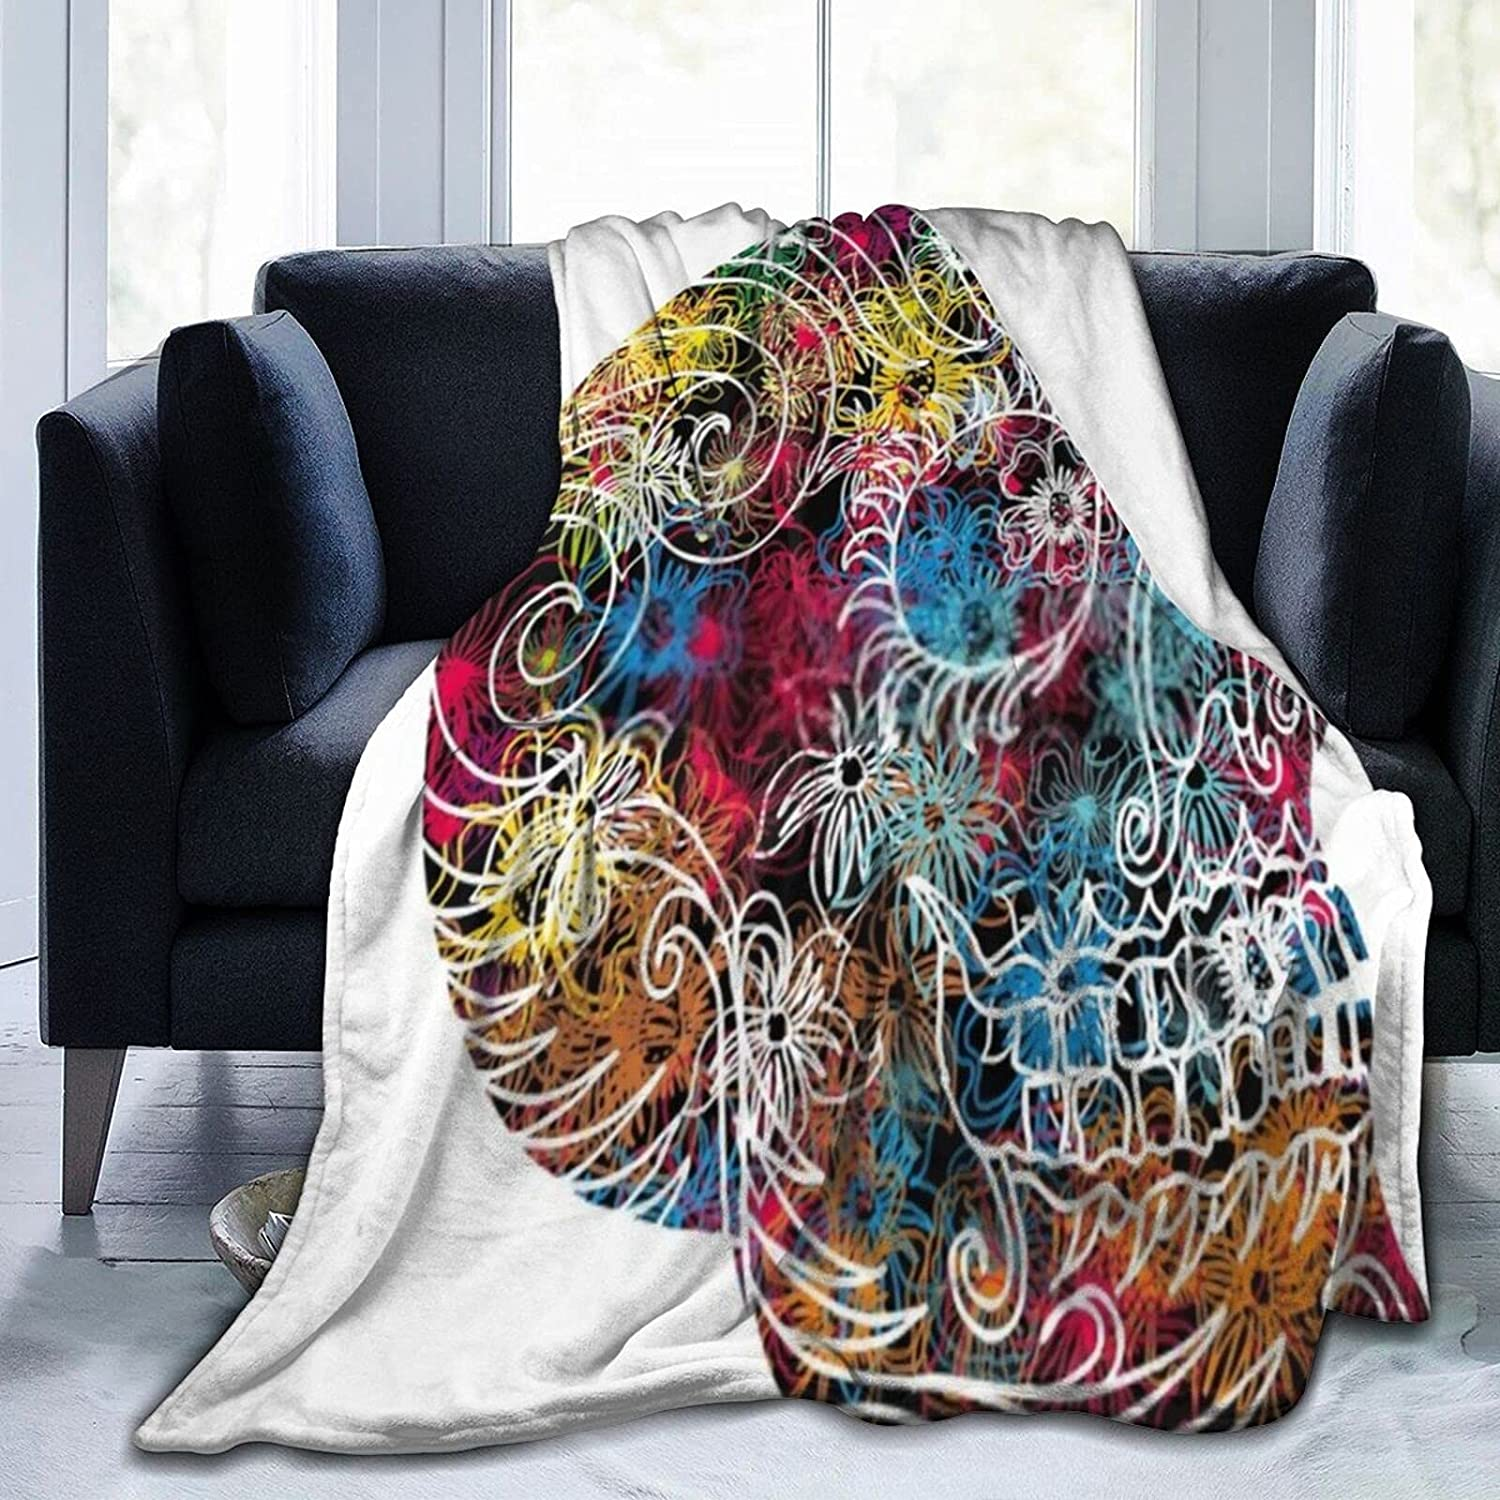 Purple Rose Skull1 Blanket Soft Micro and Super Comfortable Now on 25% OFF sale